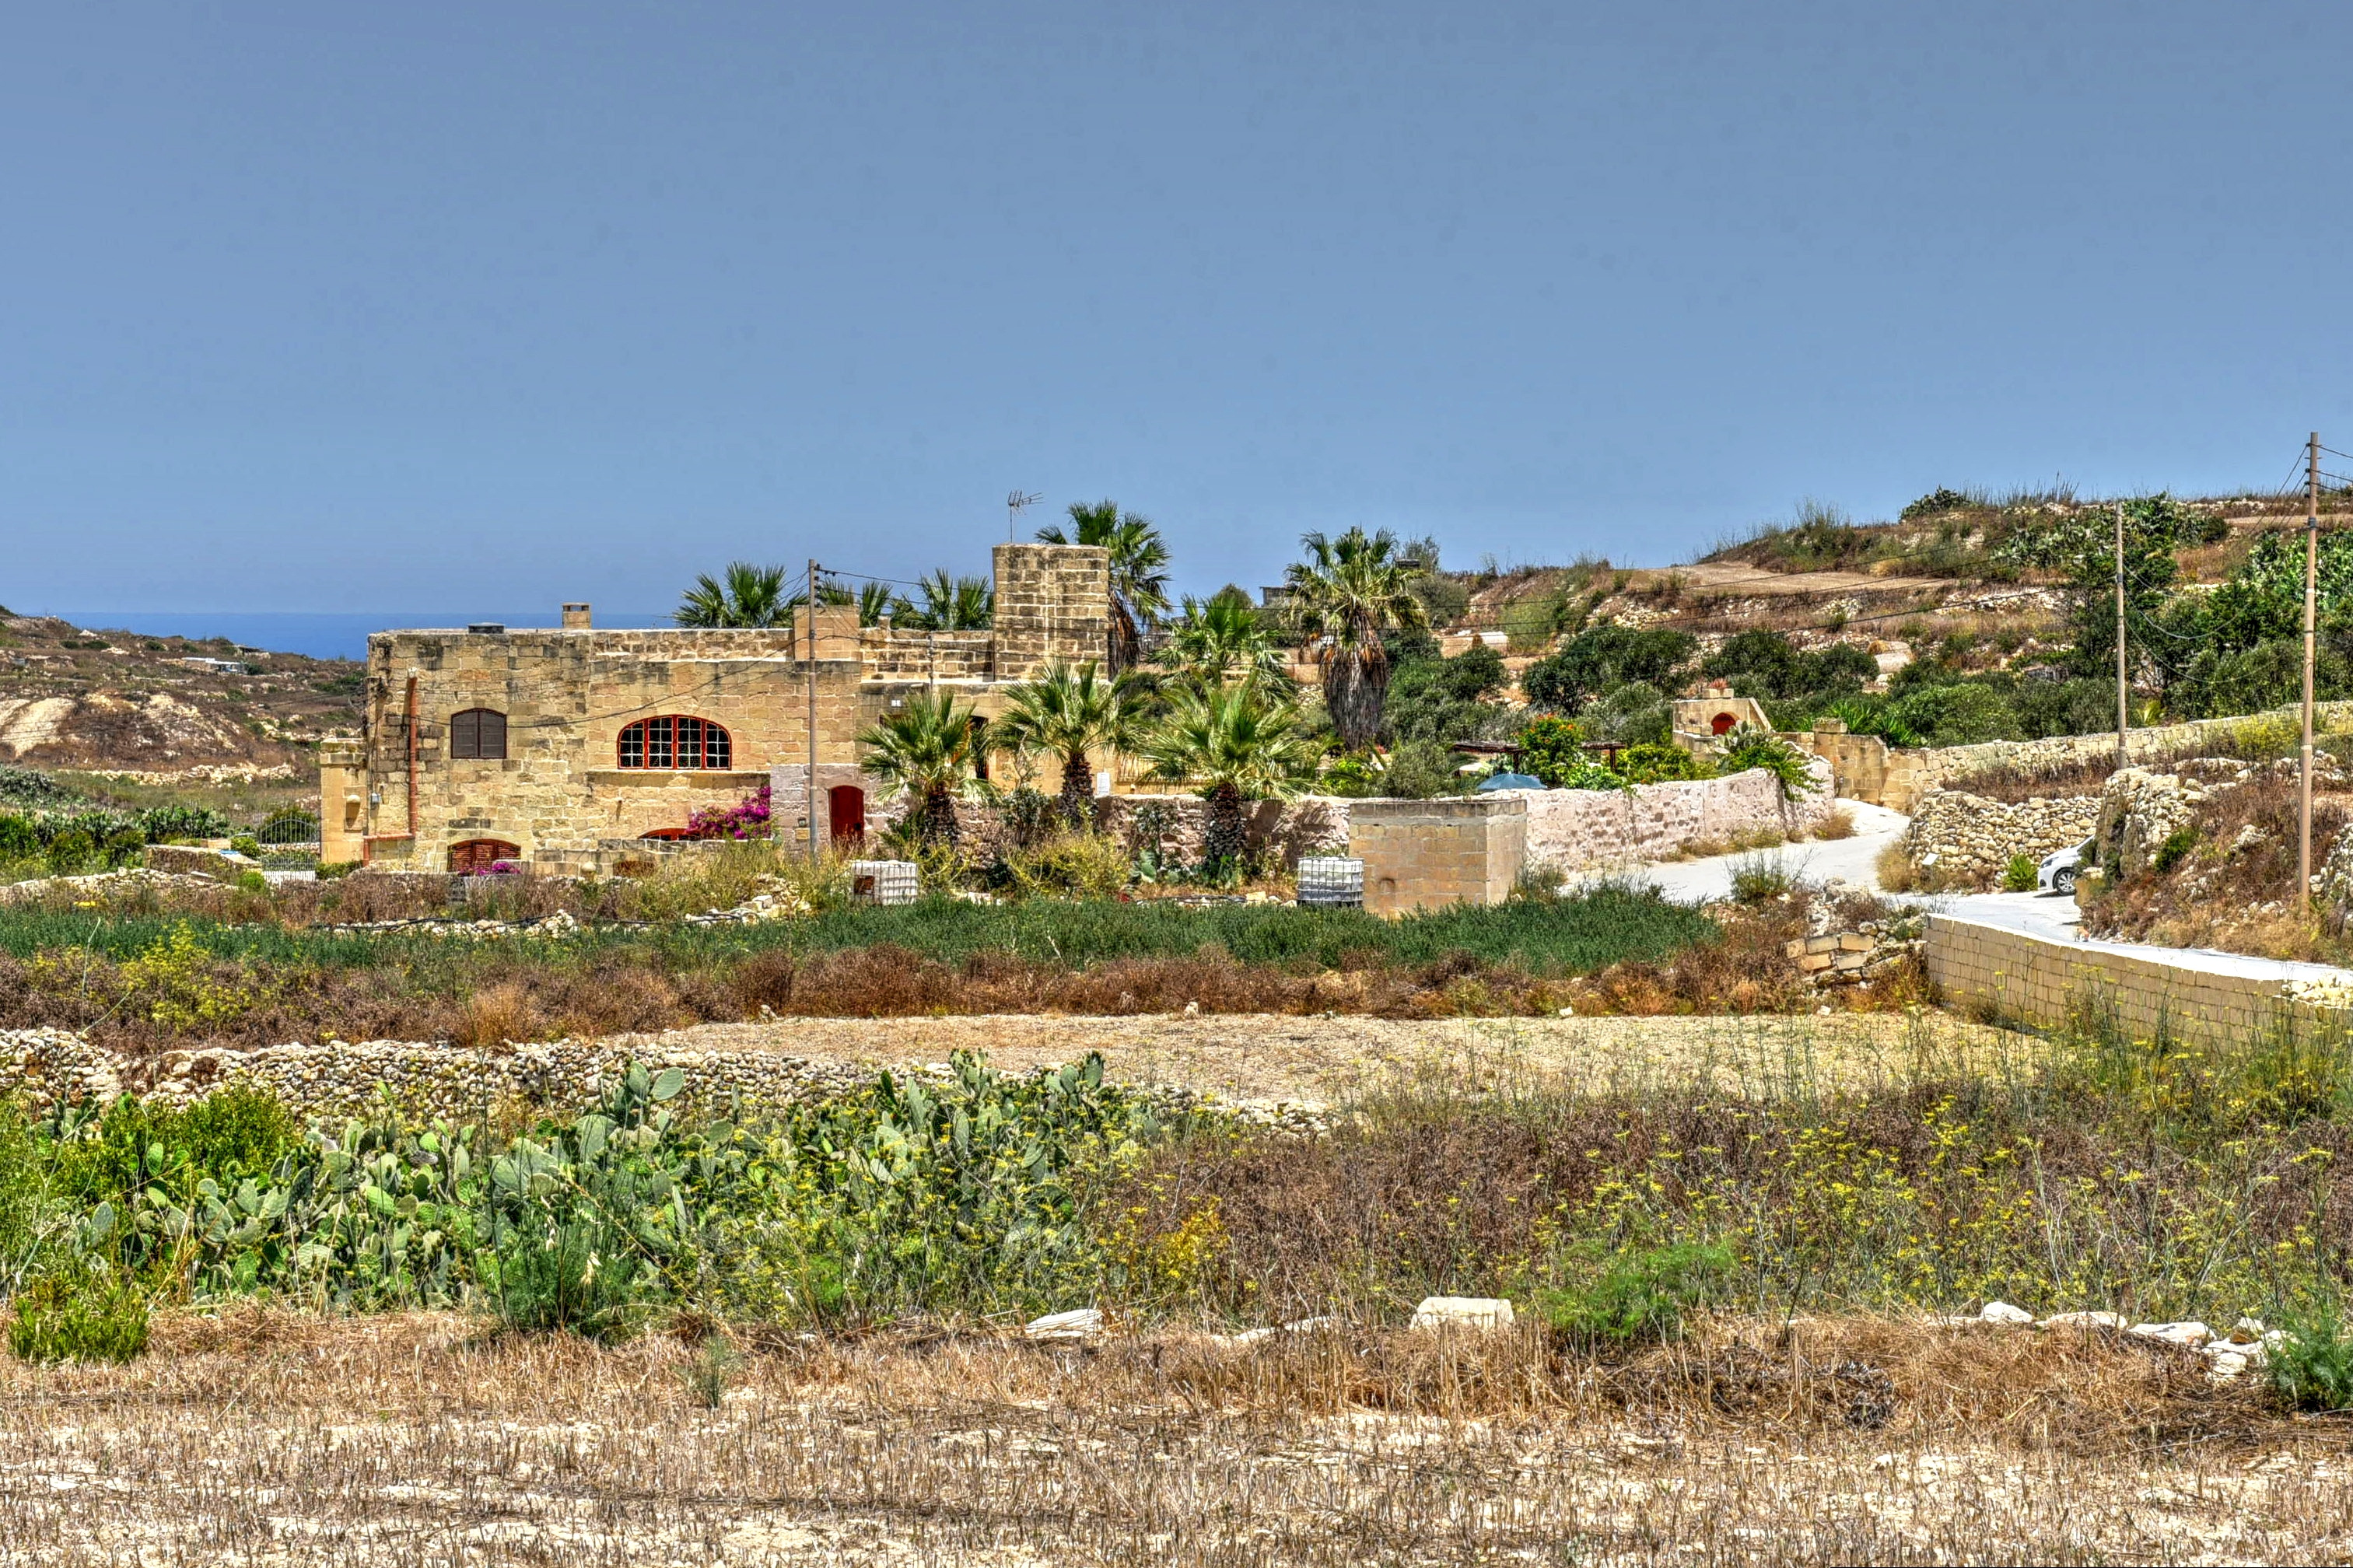 Farmhouse Palma from a distance